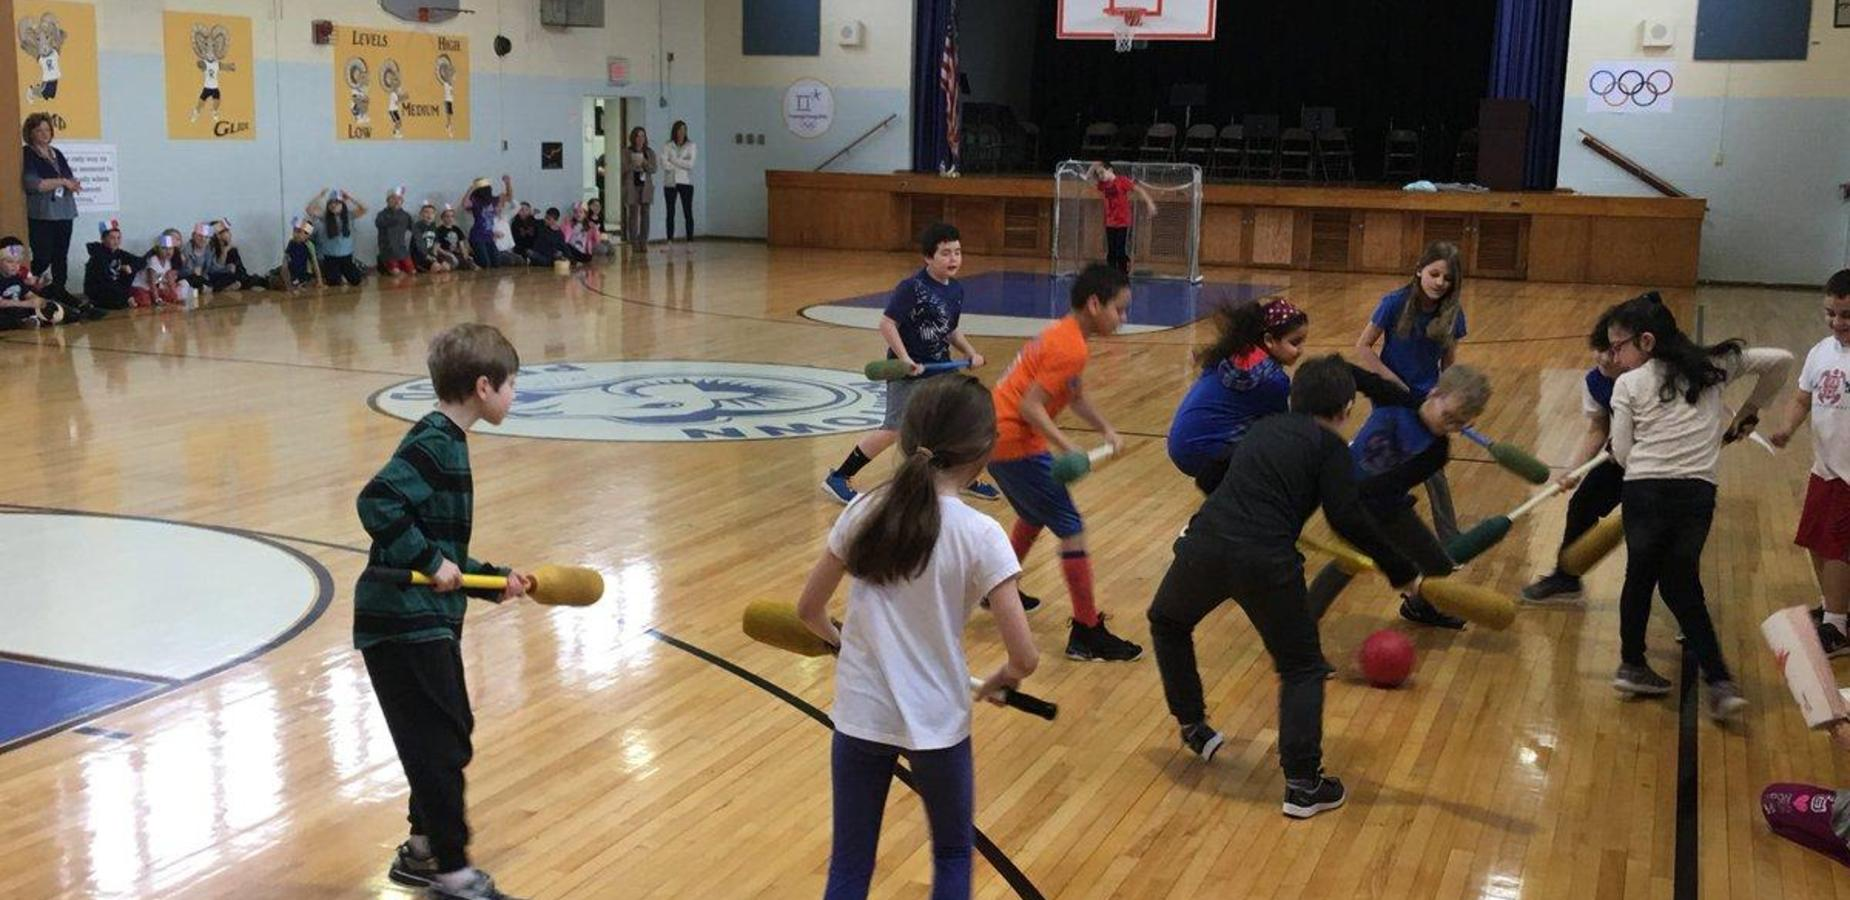 students playing in gym